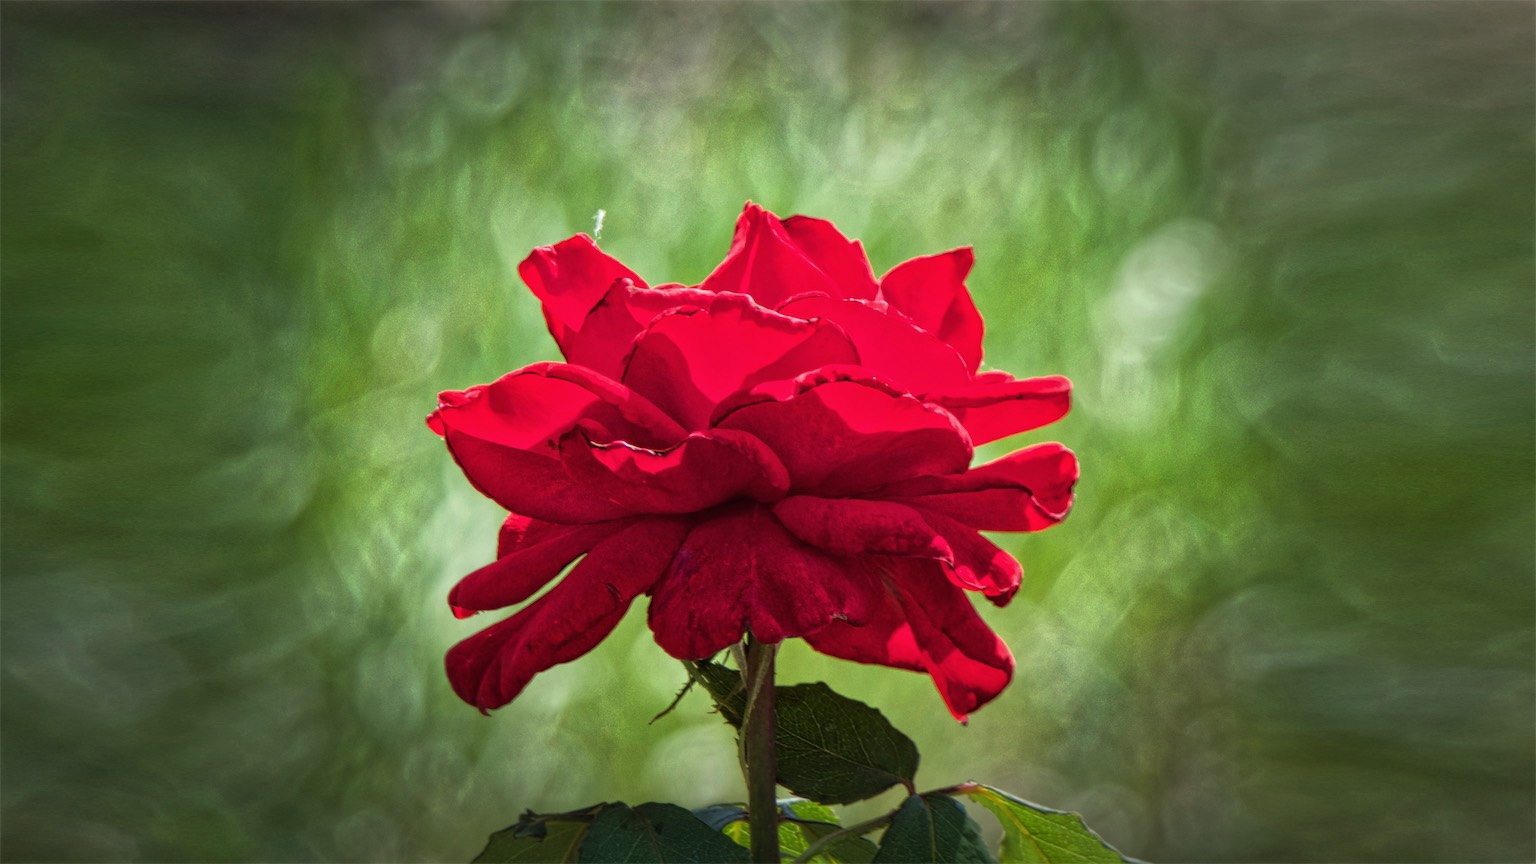 Scarlet The Rose HD 16x9.jpg